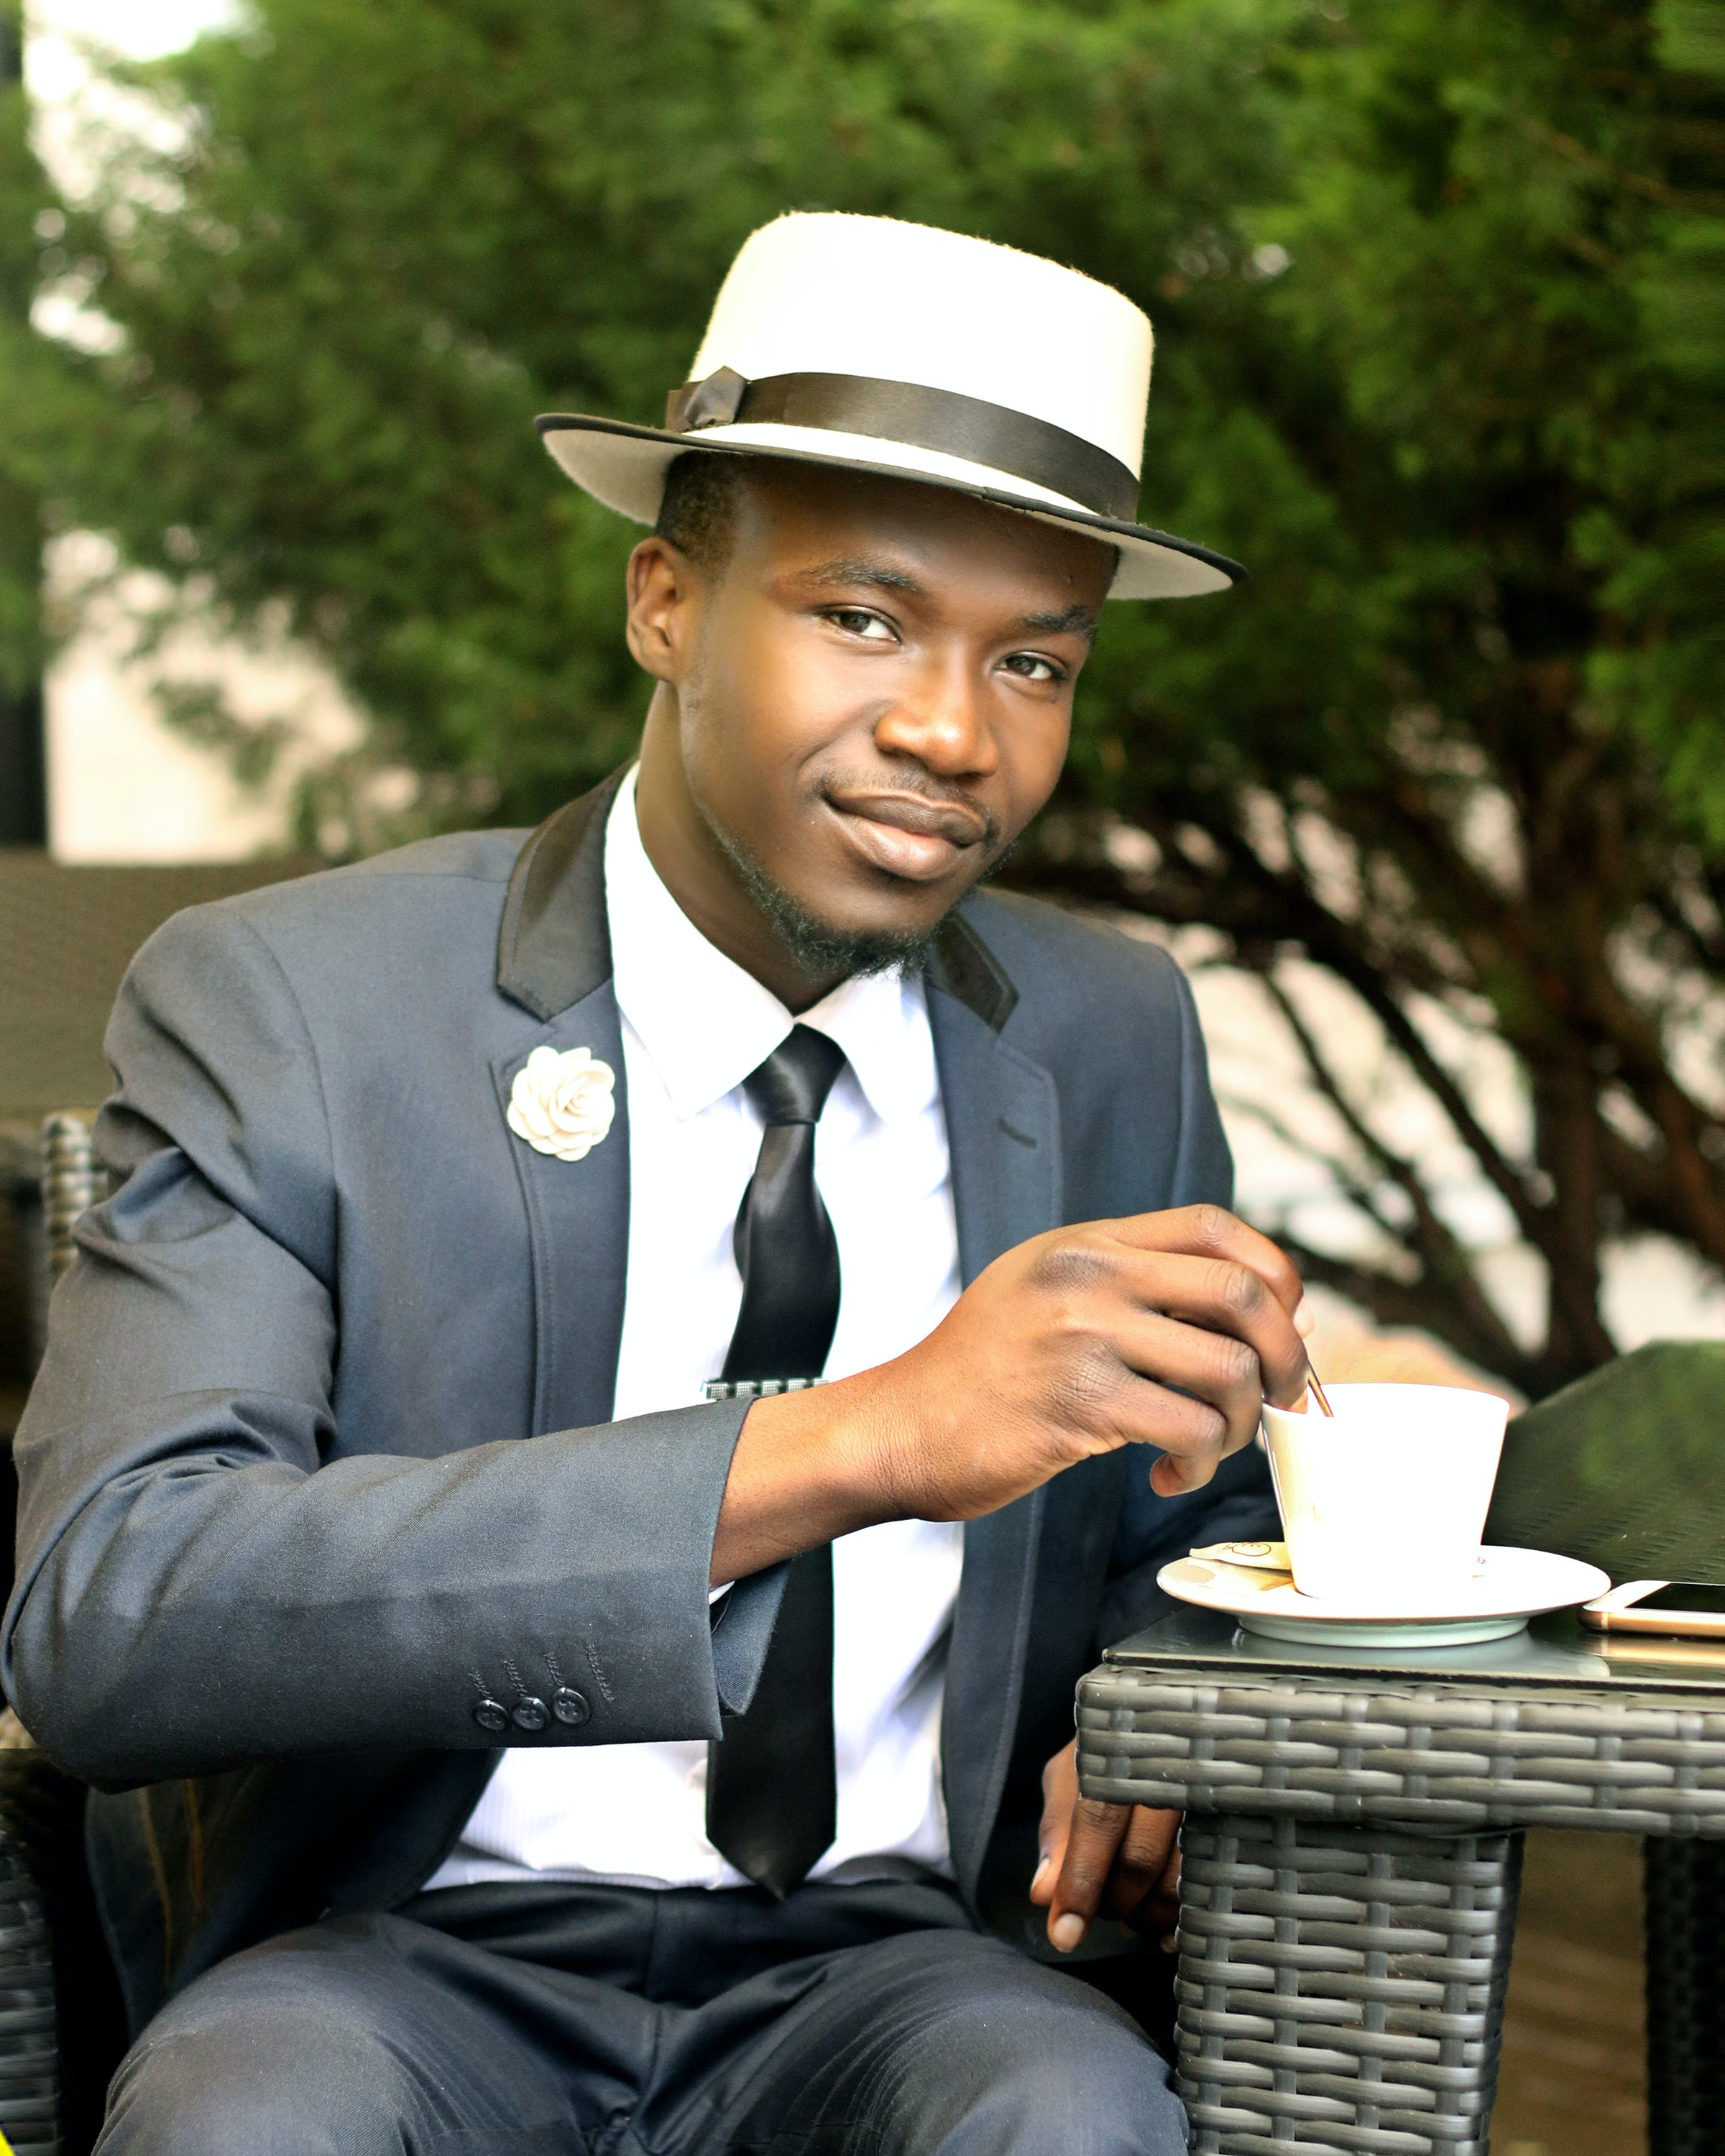 Man in Gray Formal Suit Jacket Stirring Coffee during Daytime